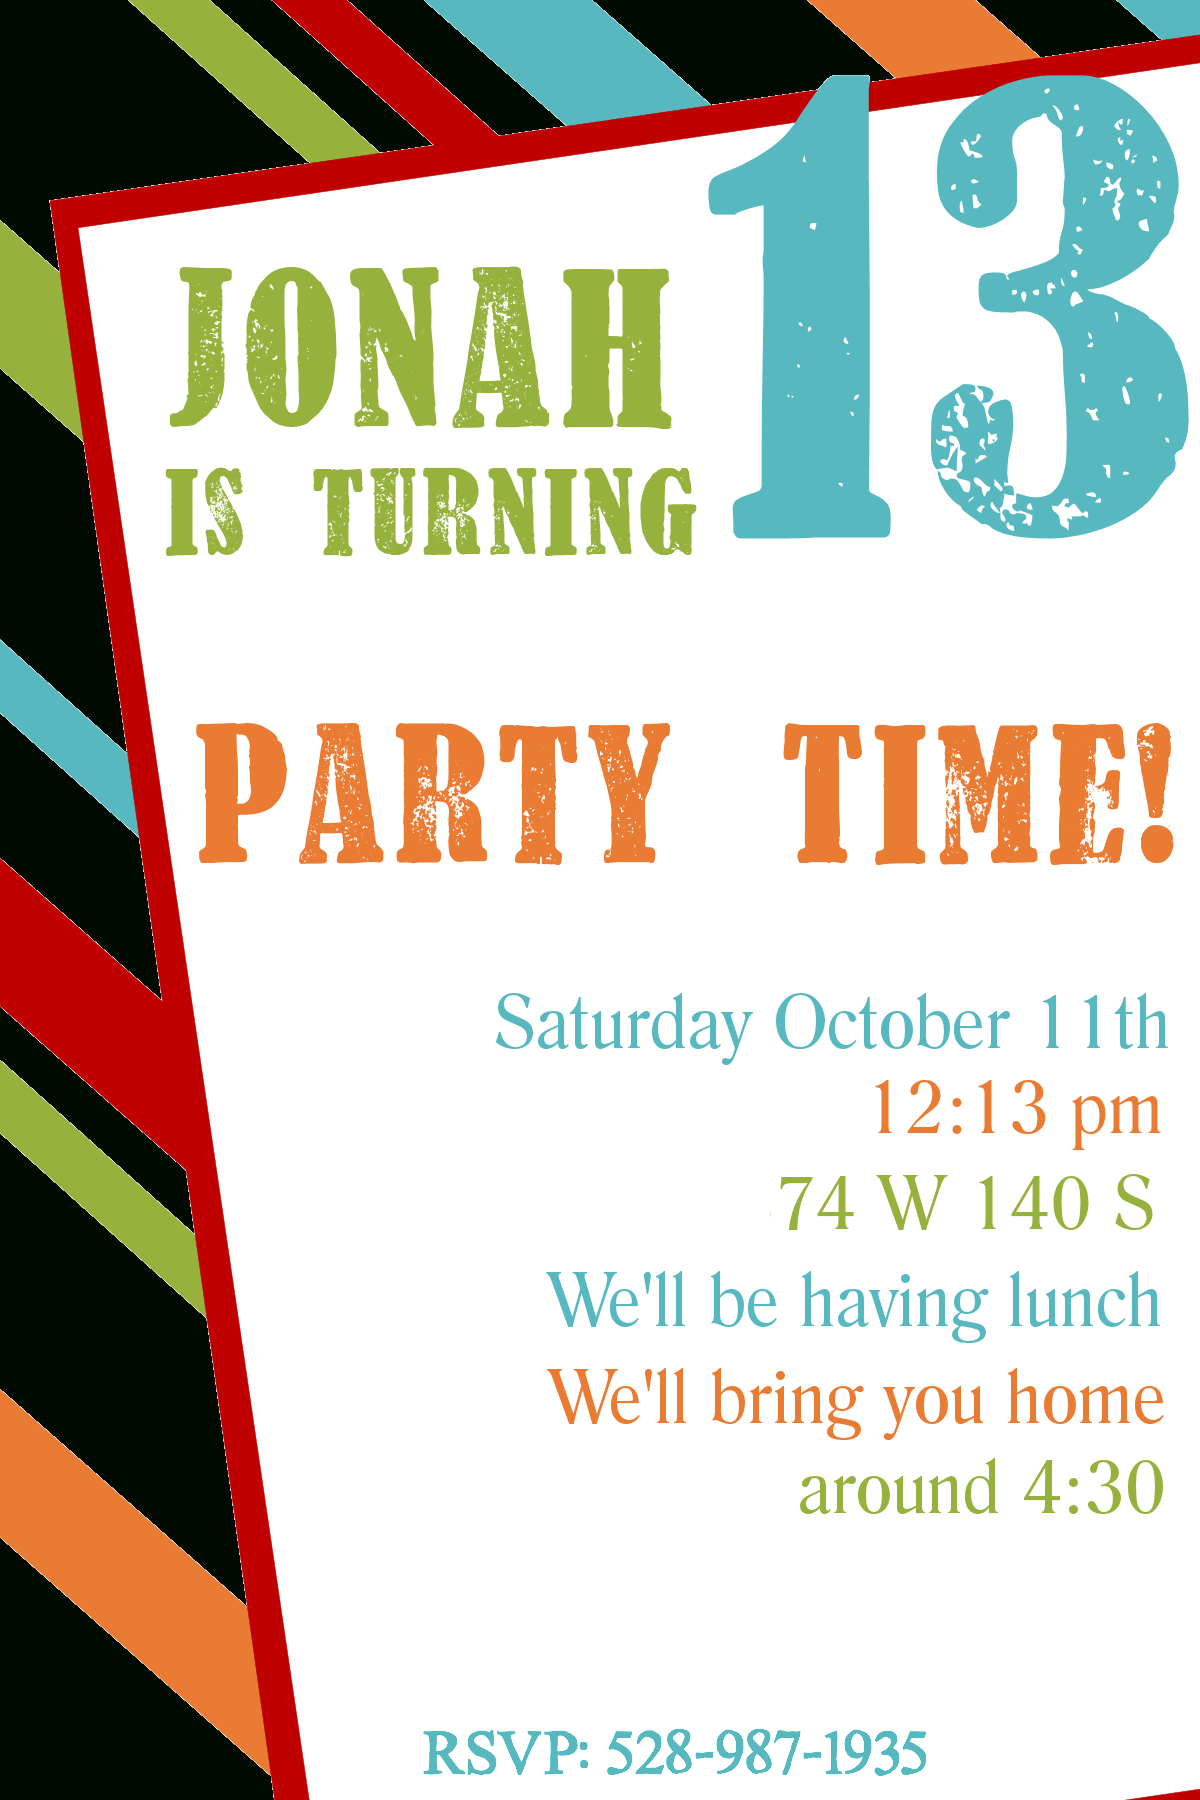 Free Printable Birthday Invitation Templates - Free Printable Birthday Invitations For Him